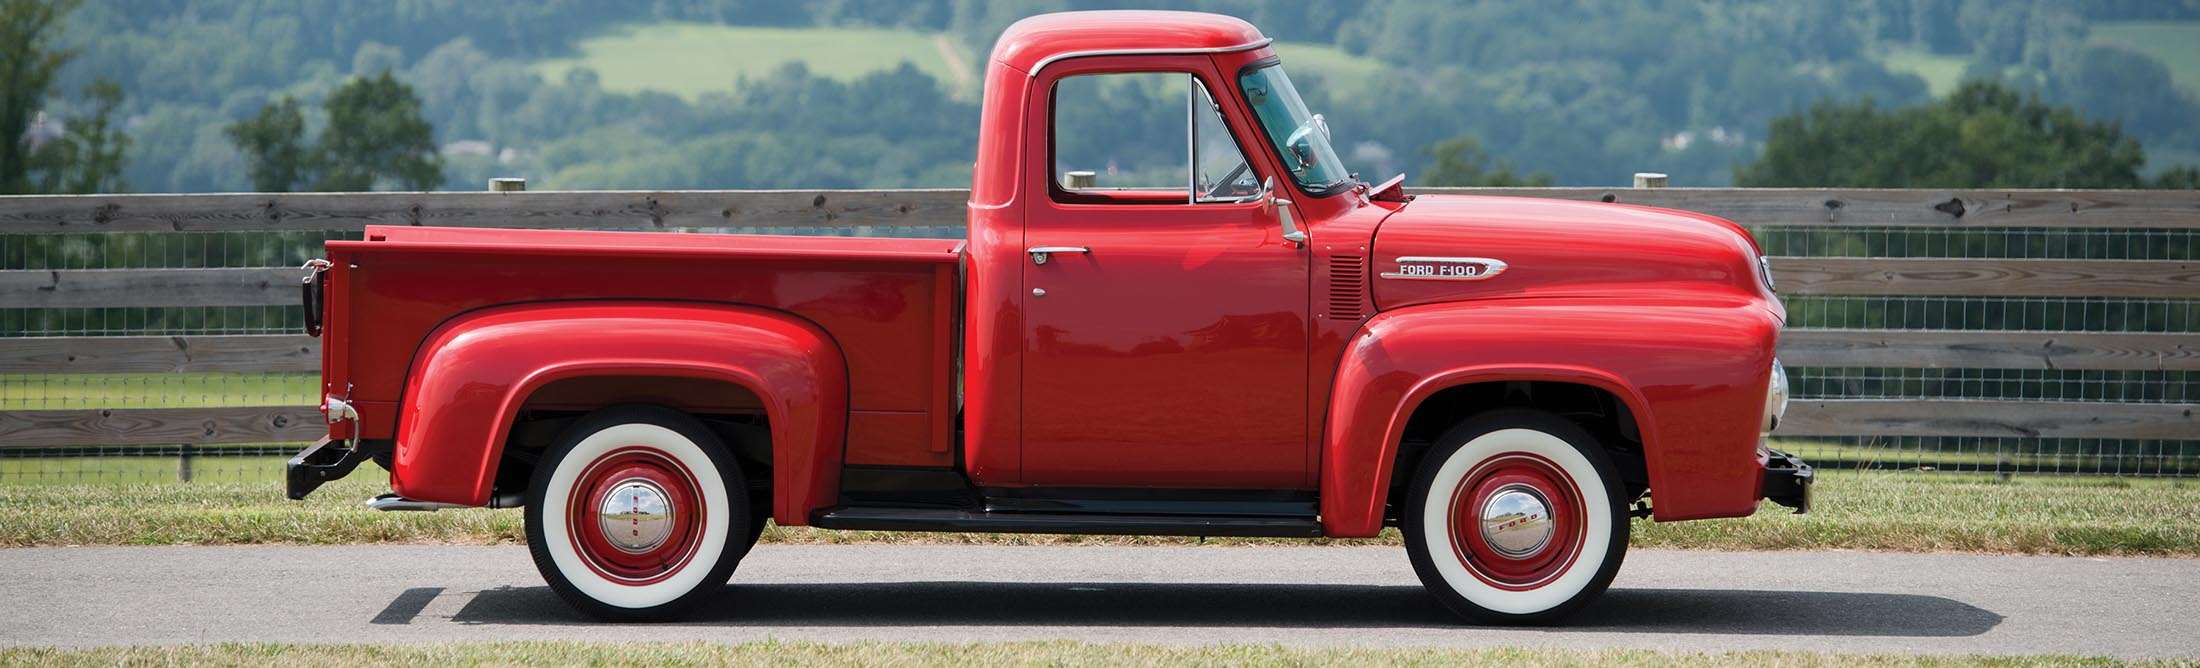 Why Now\'s the Time to Invest in a Vintage Ford Pickup Truck - Bloomberg